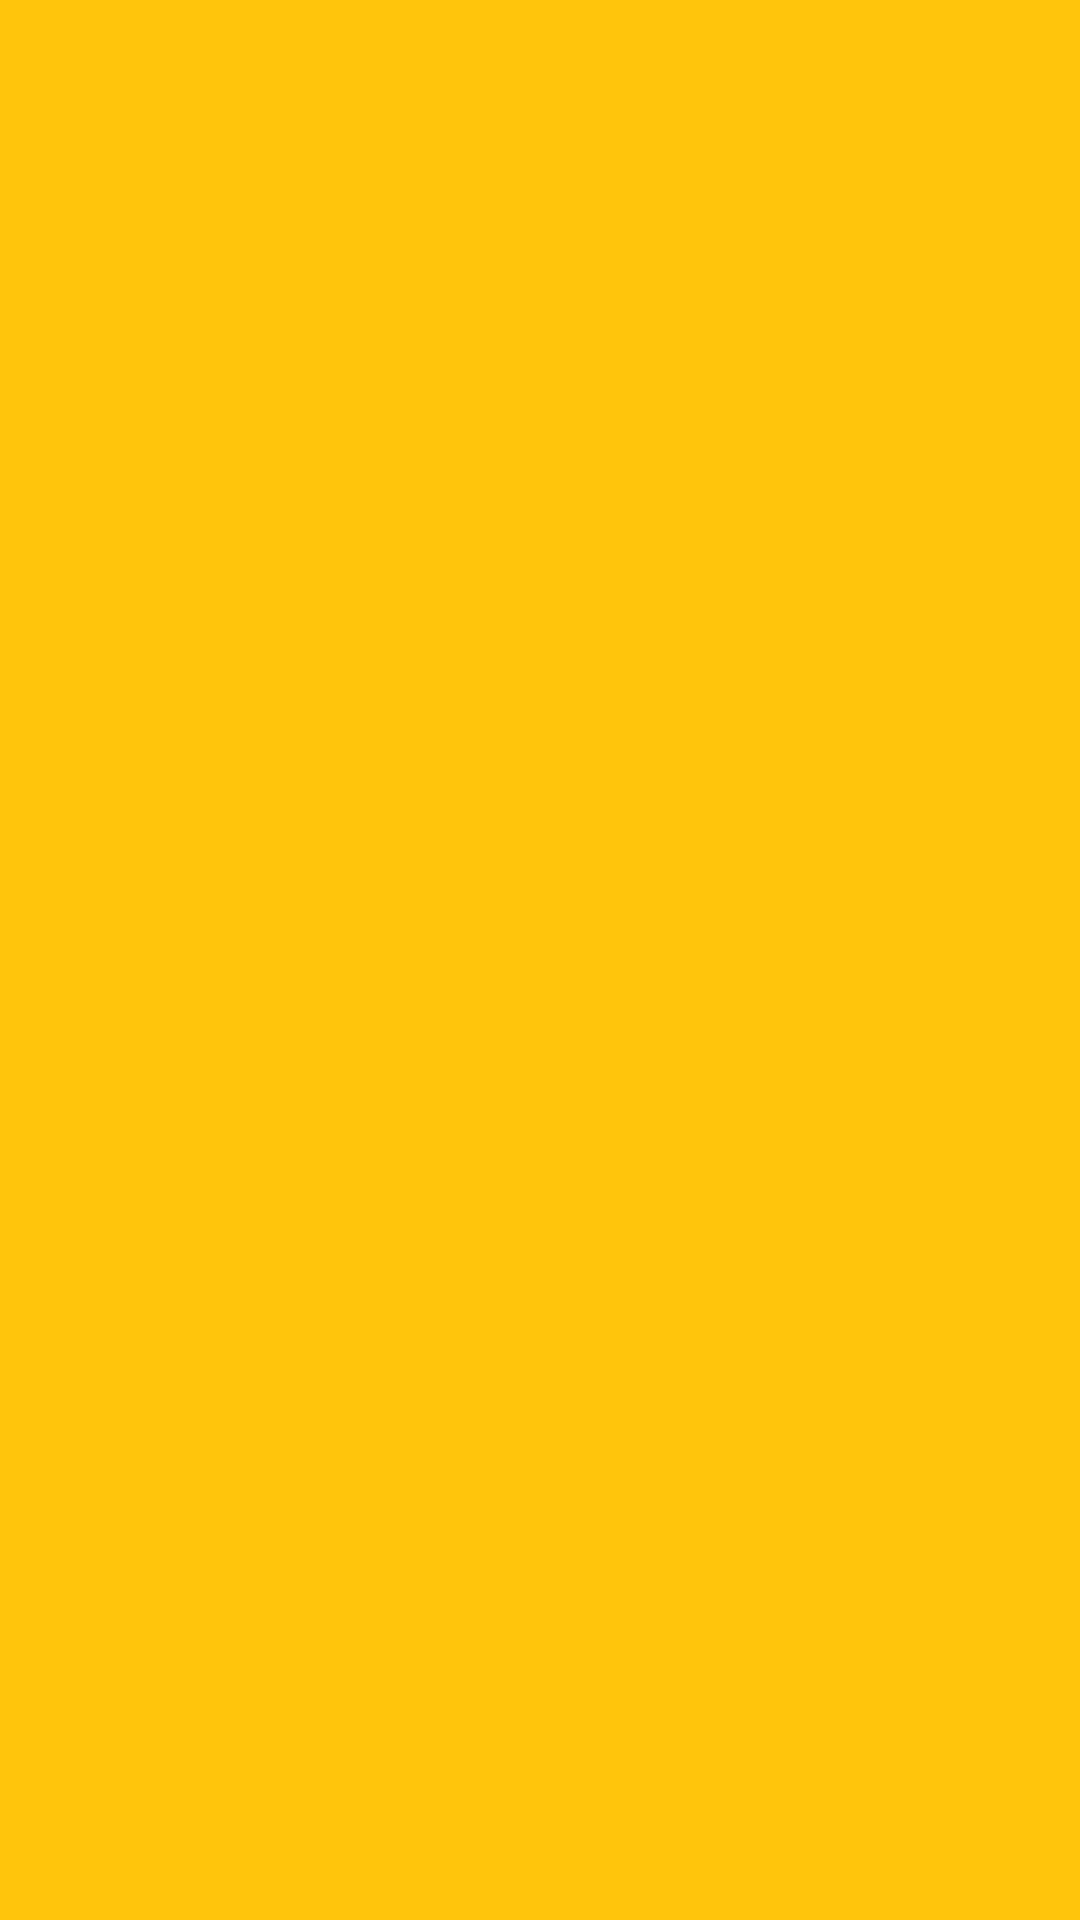 1080x1920 Mikado Yellow Solid Color Background